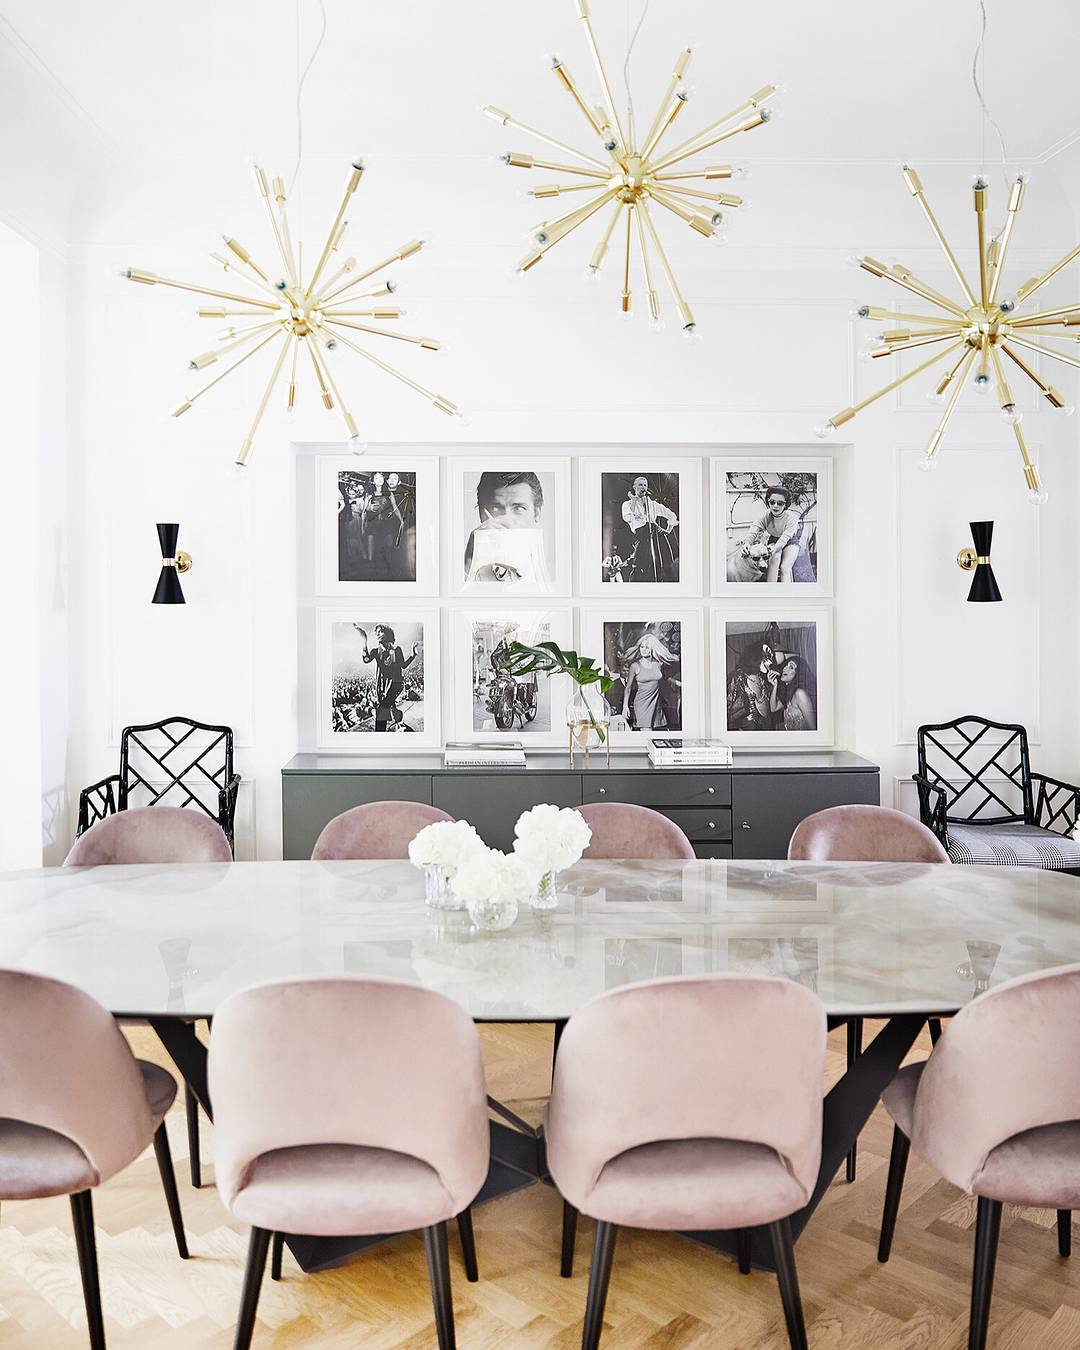 Pink Velvet dining chairs and starburst chandelier via @delia_westwing